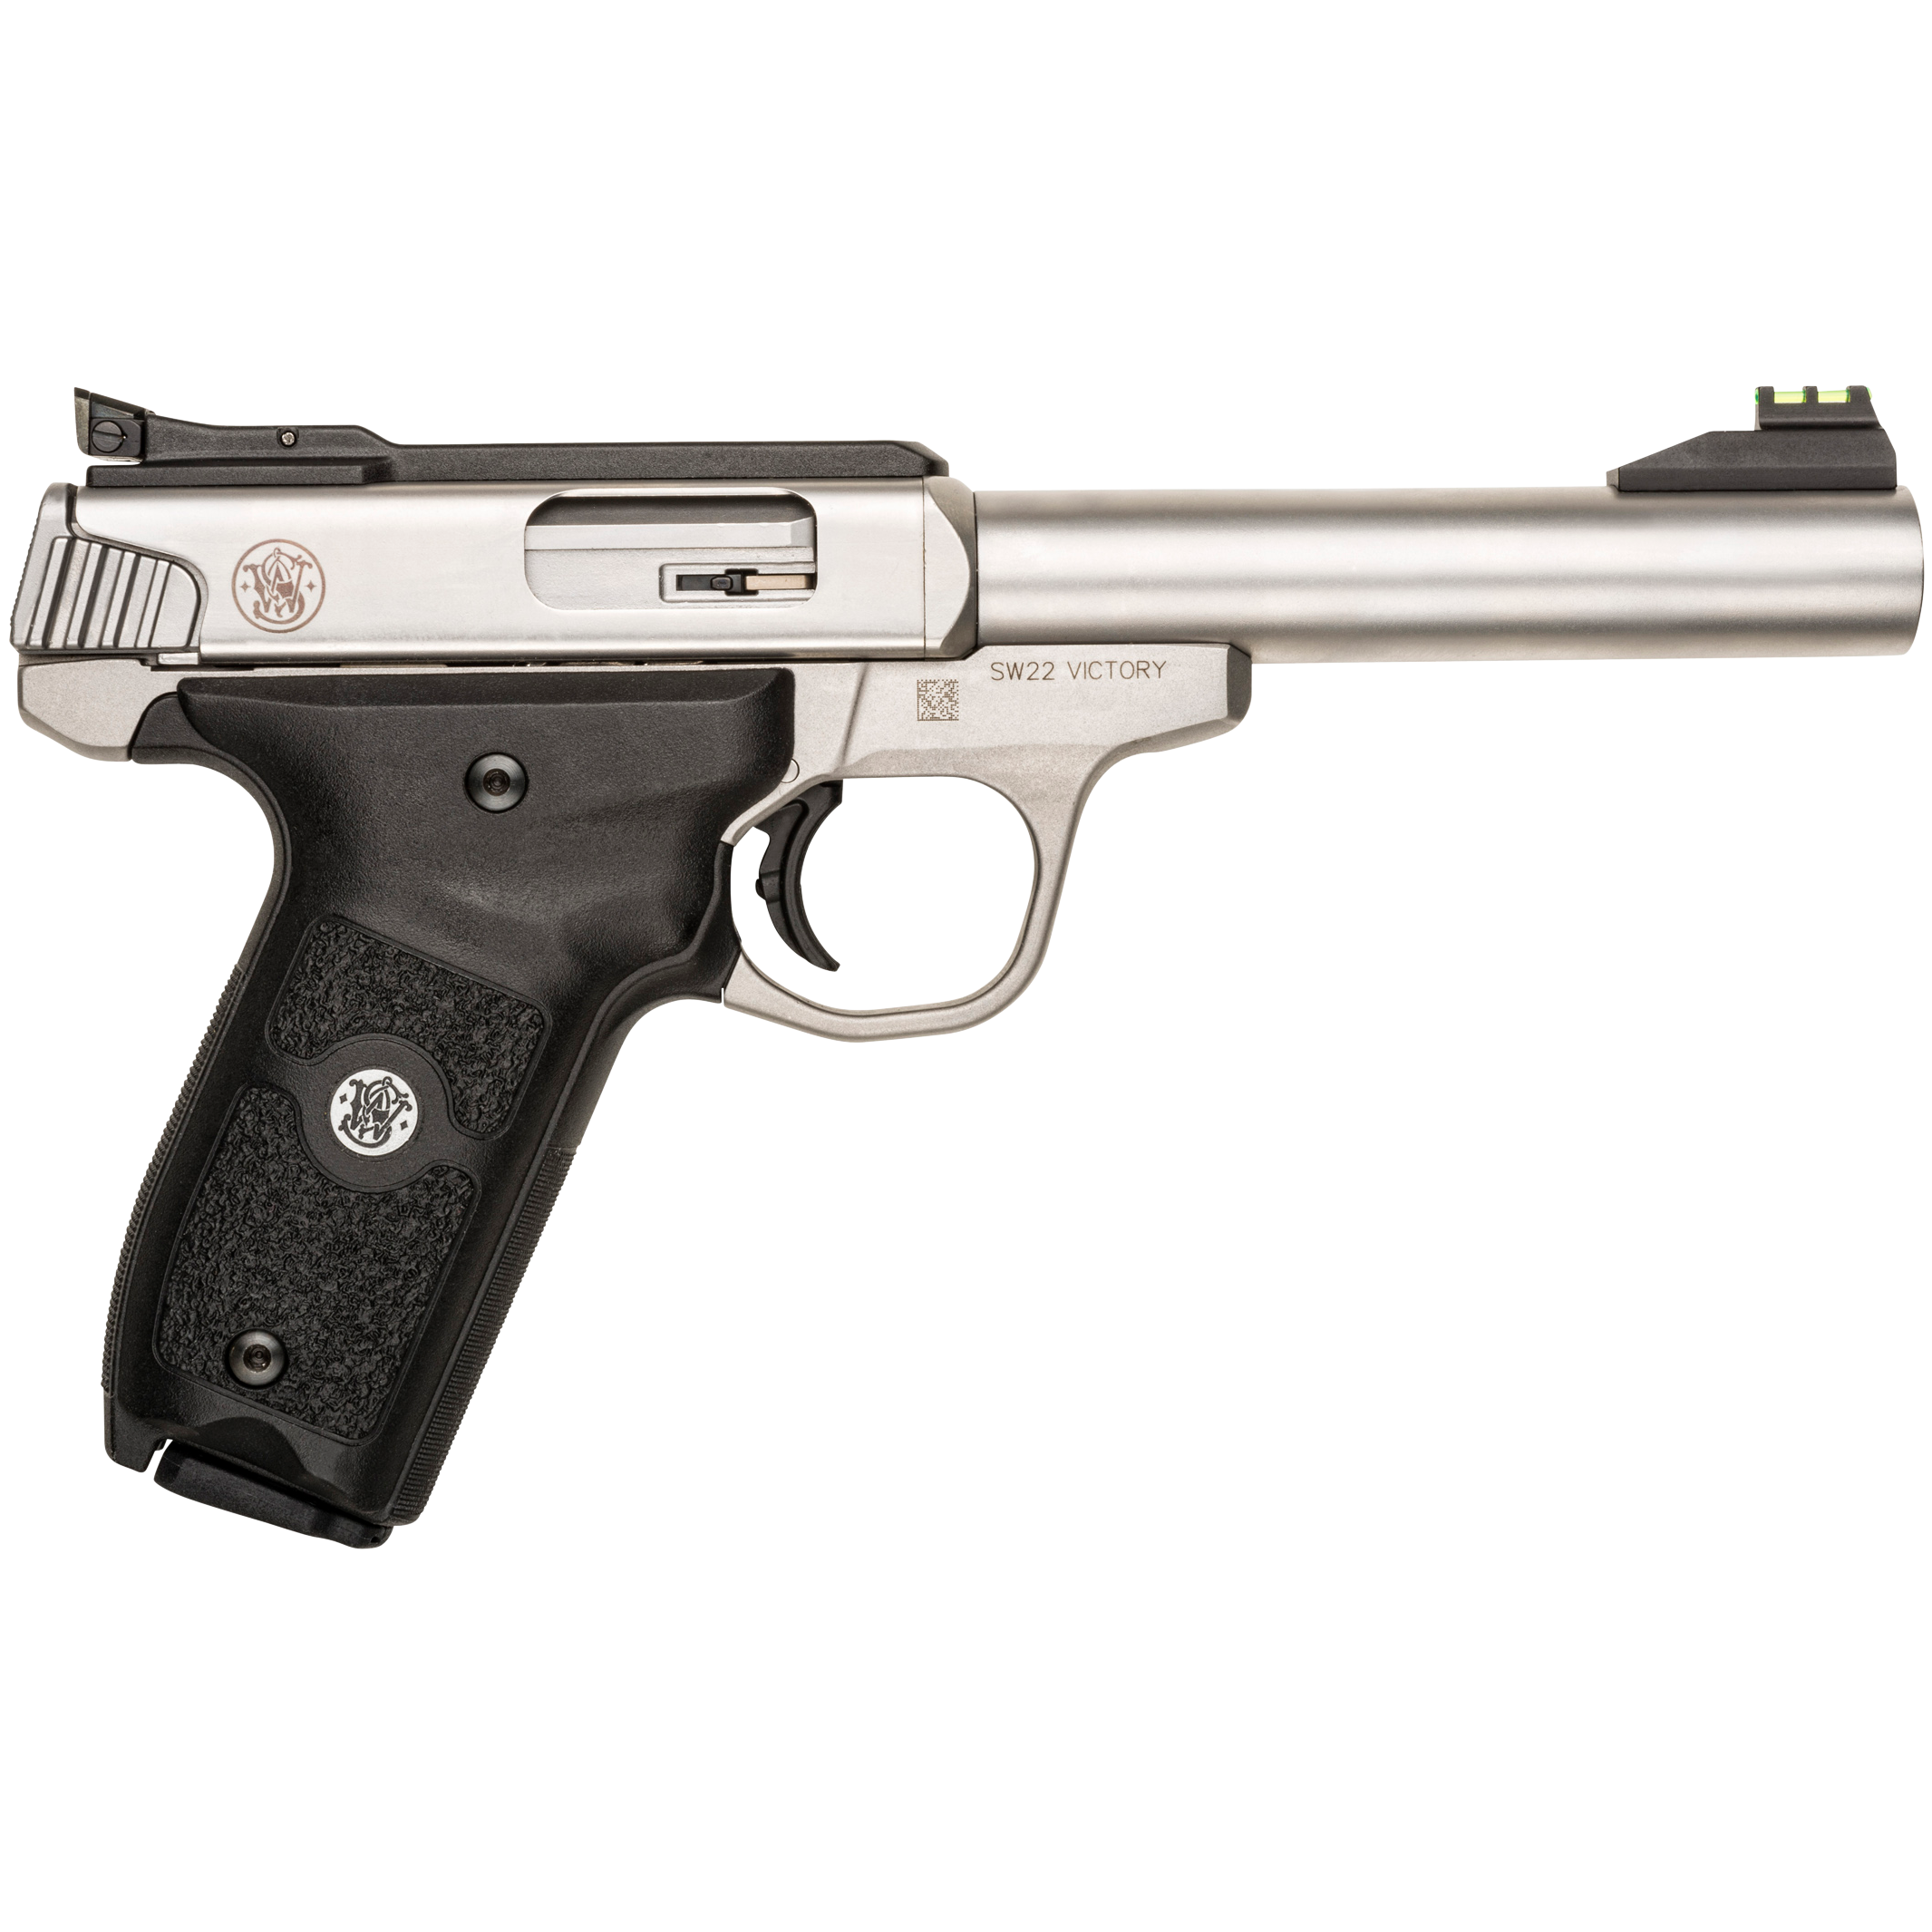 Smith & Wesson Victory Thumb Safety 22 Long Rifle Pistol